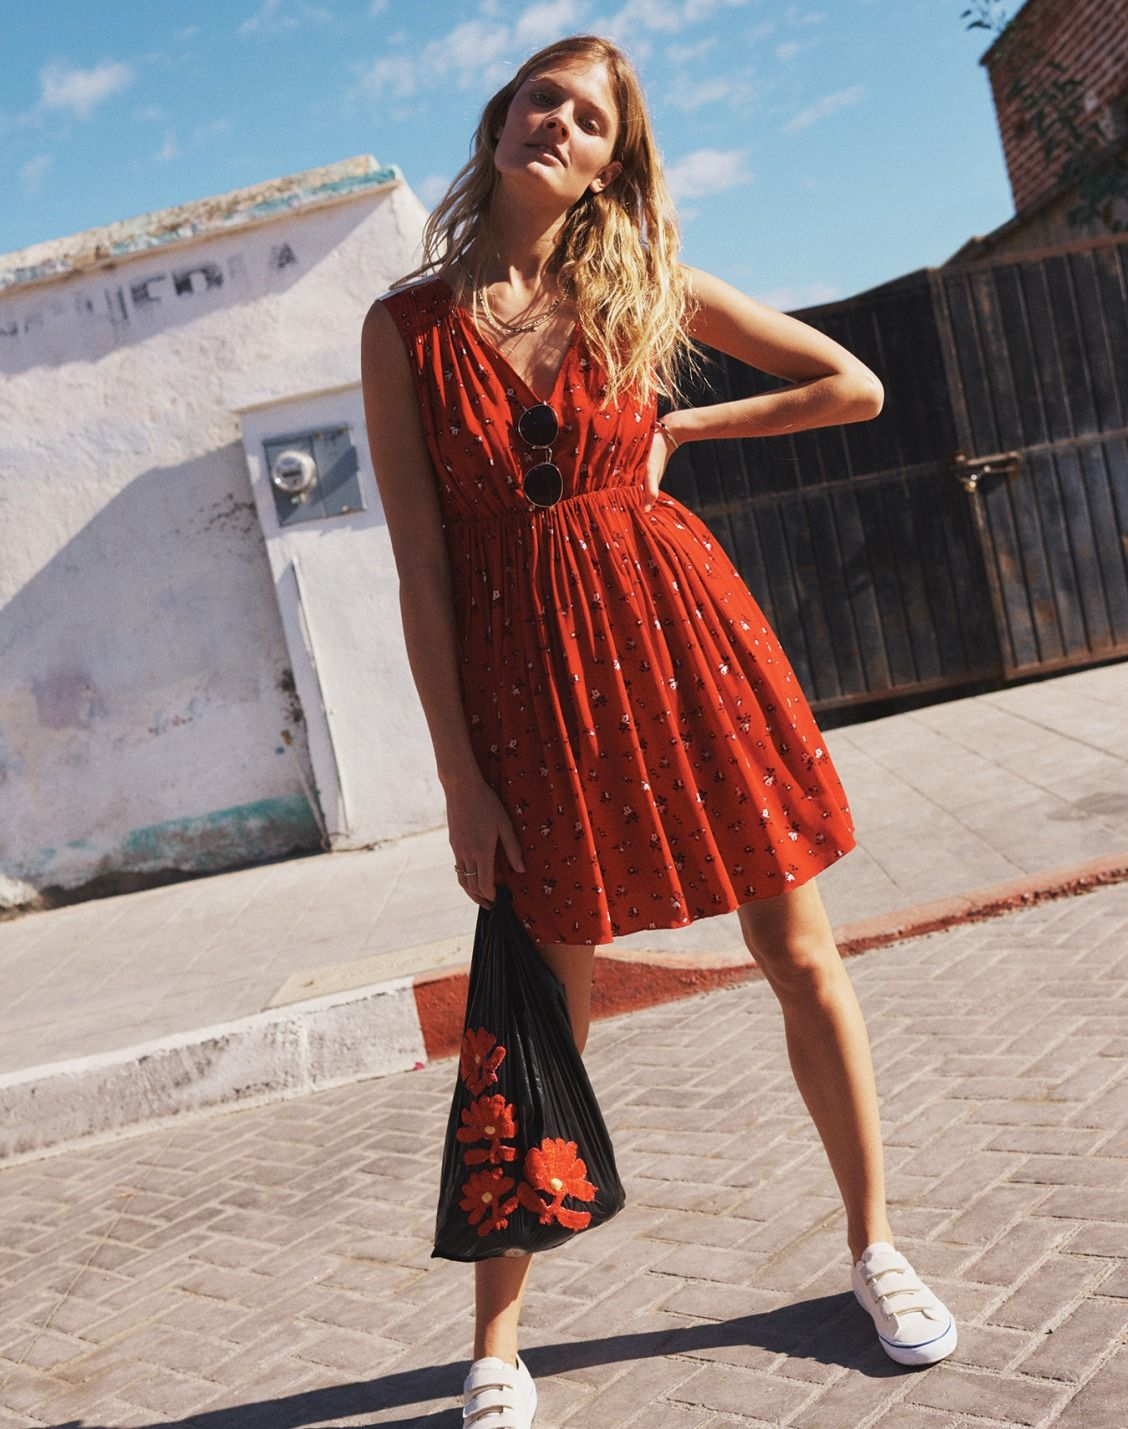 5487ce0bca madewell magnolia tie-back dress worn with the fest aviator sunglasses +  vans® sneakers.